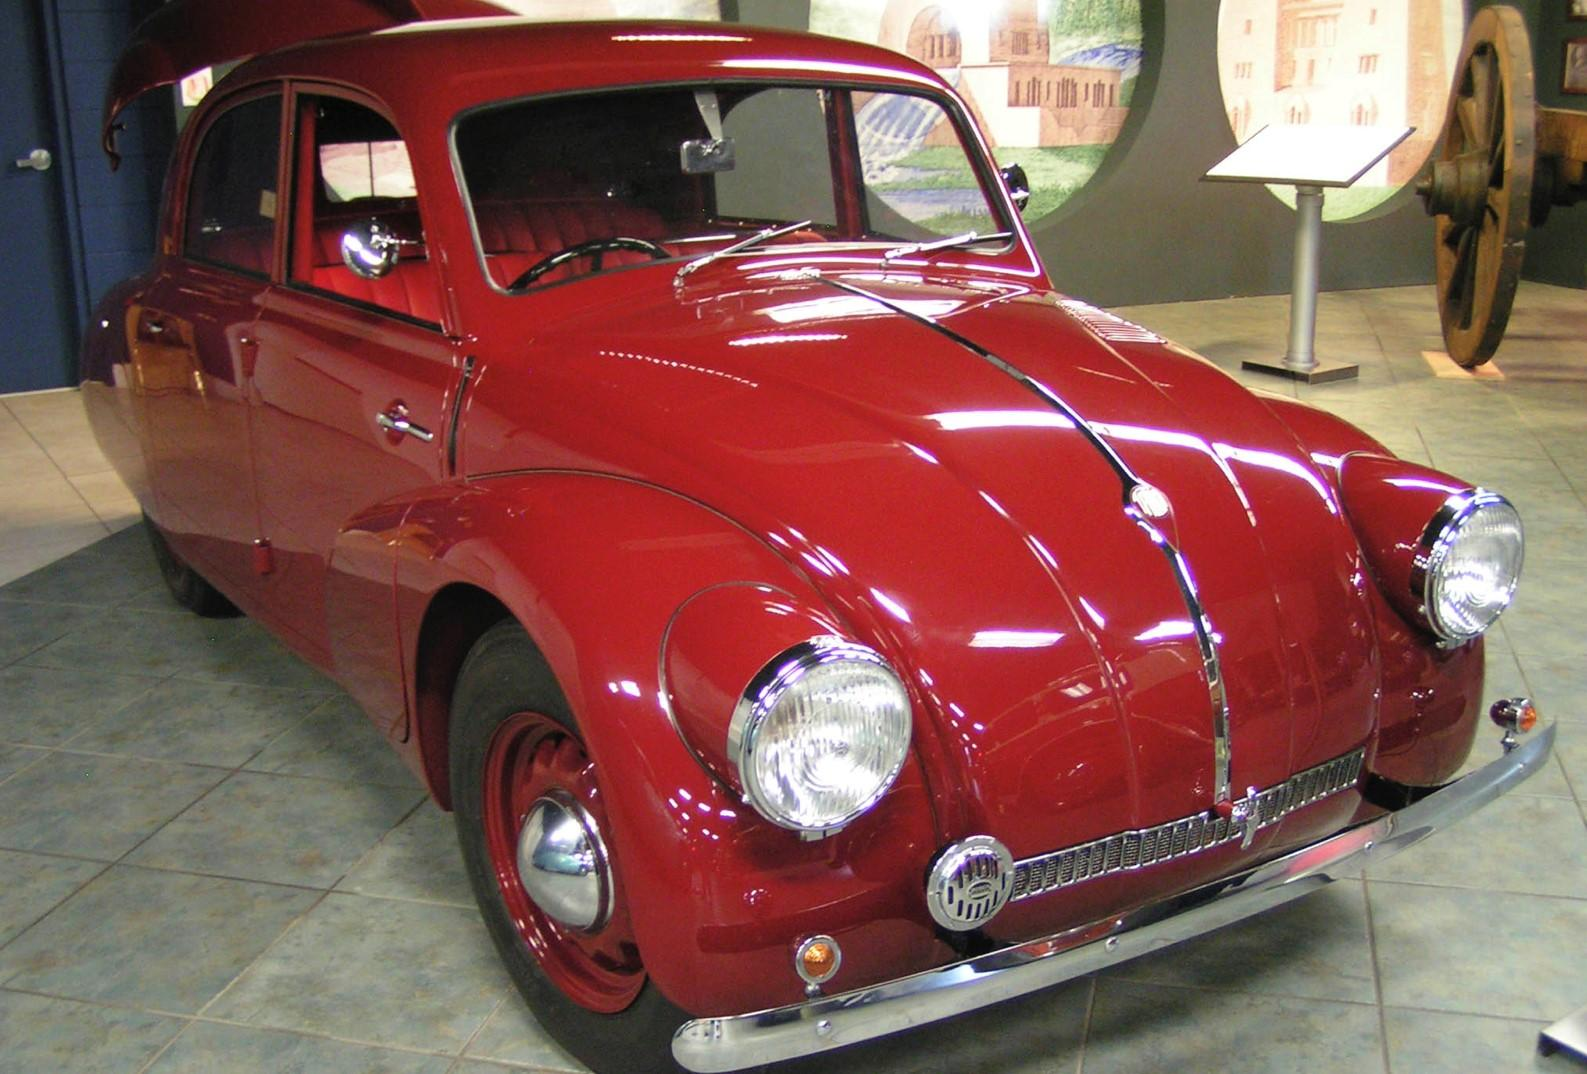 Tatra 97, the model which 'inspired' Ferdinand Porsche when designing the Beetle.